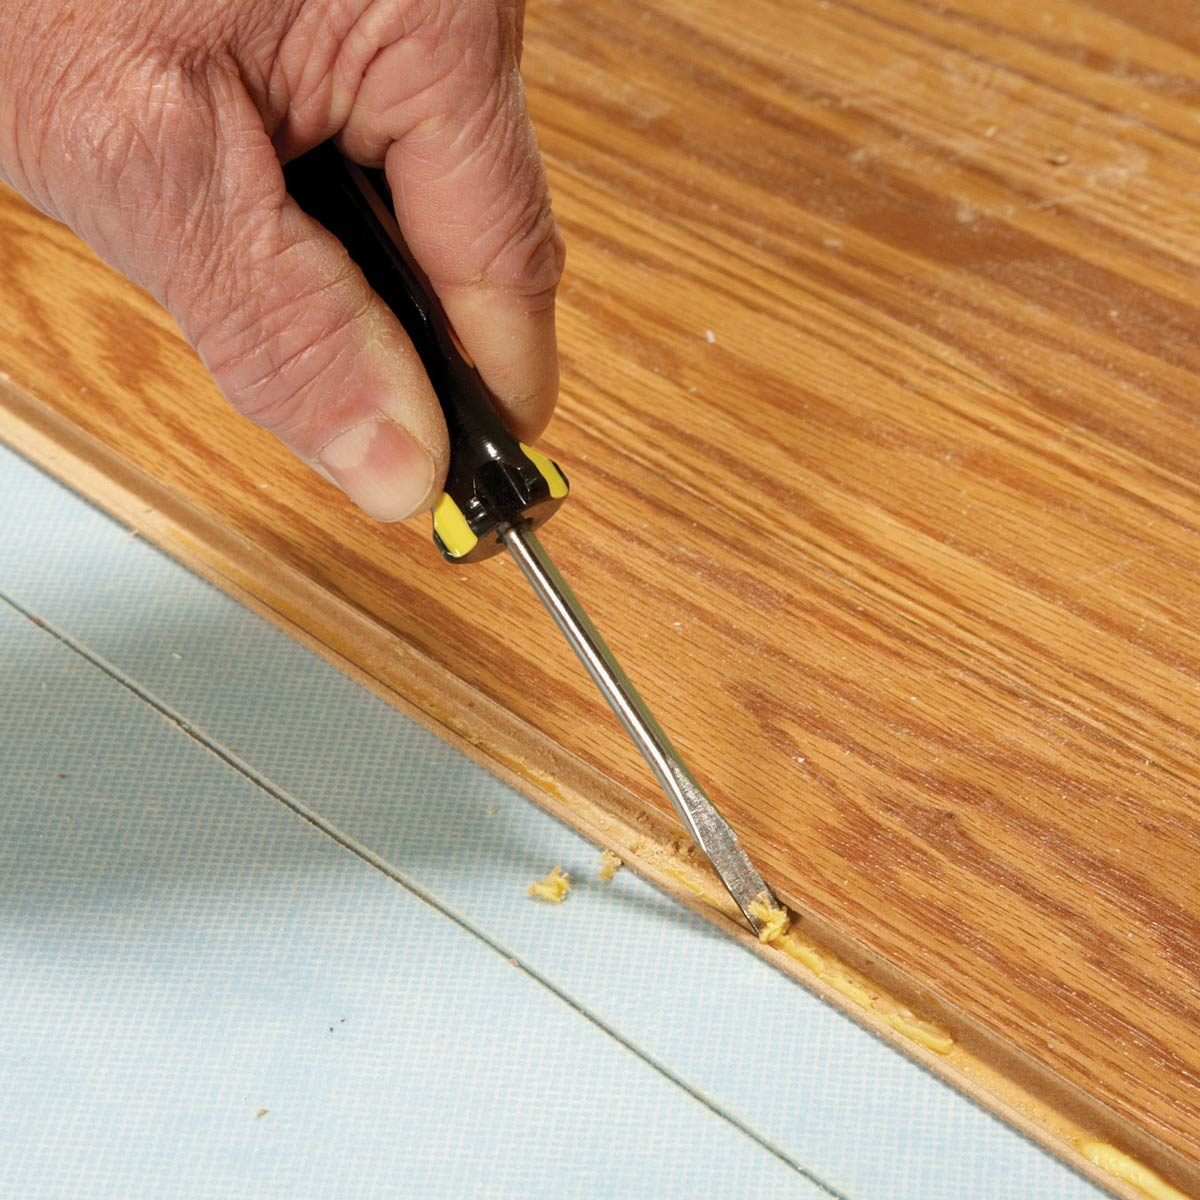 remove glue from planks